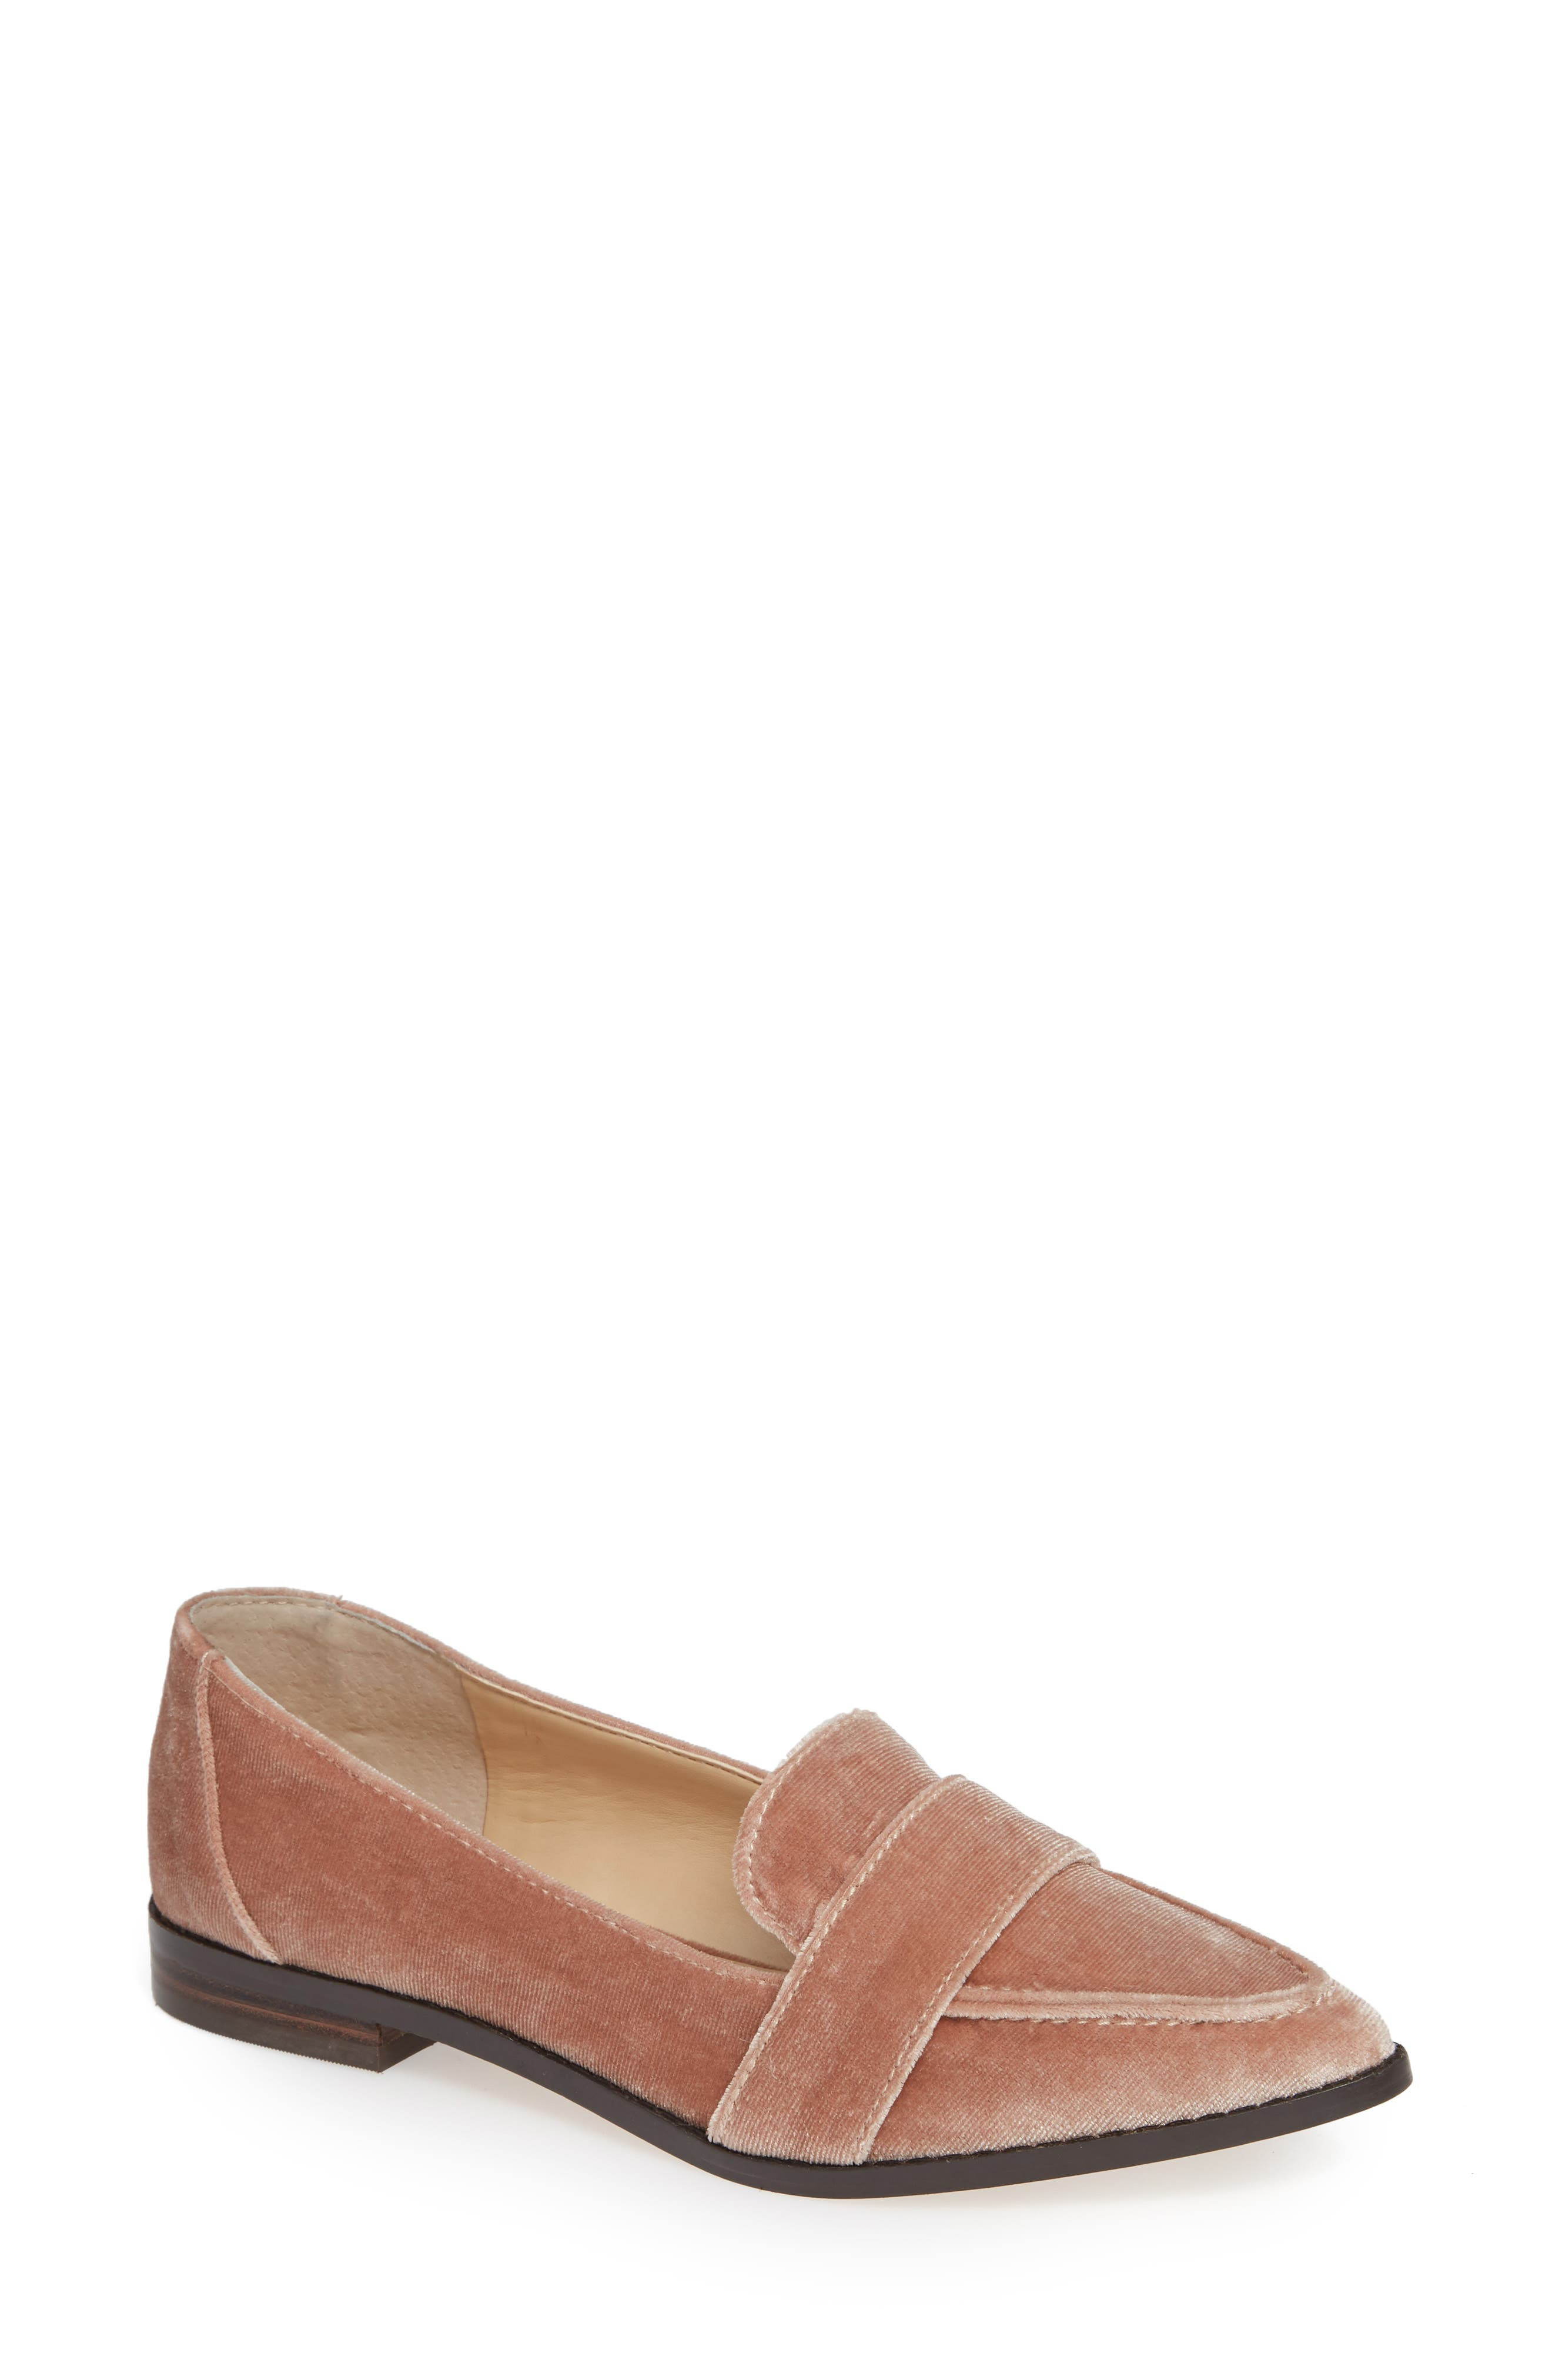 Edie Pointy Toe Loafer,                         Main,                         color, 682